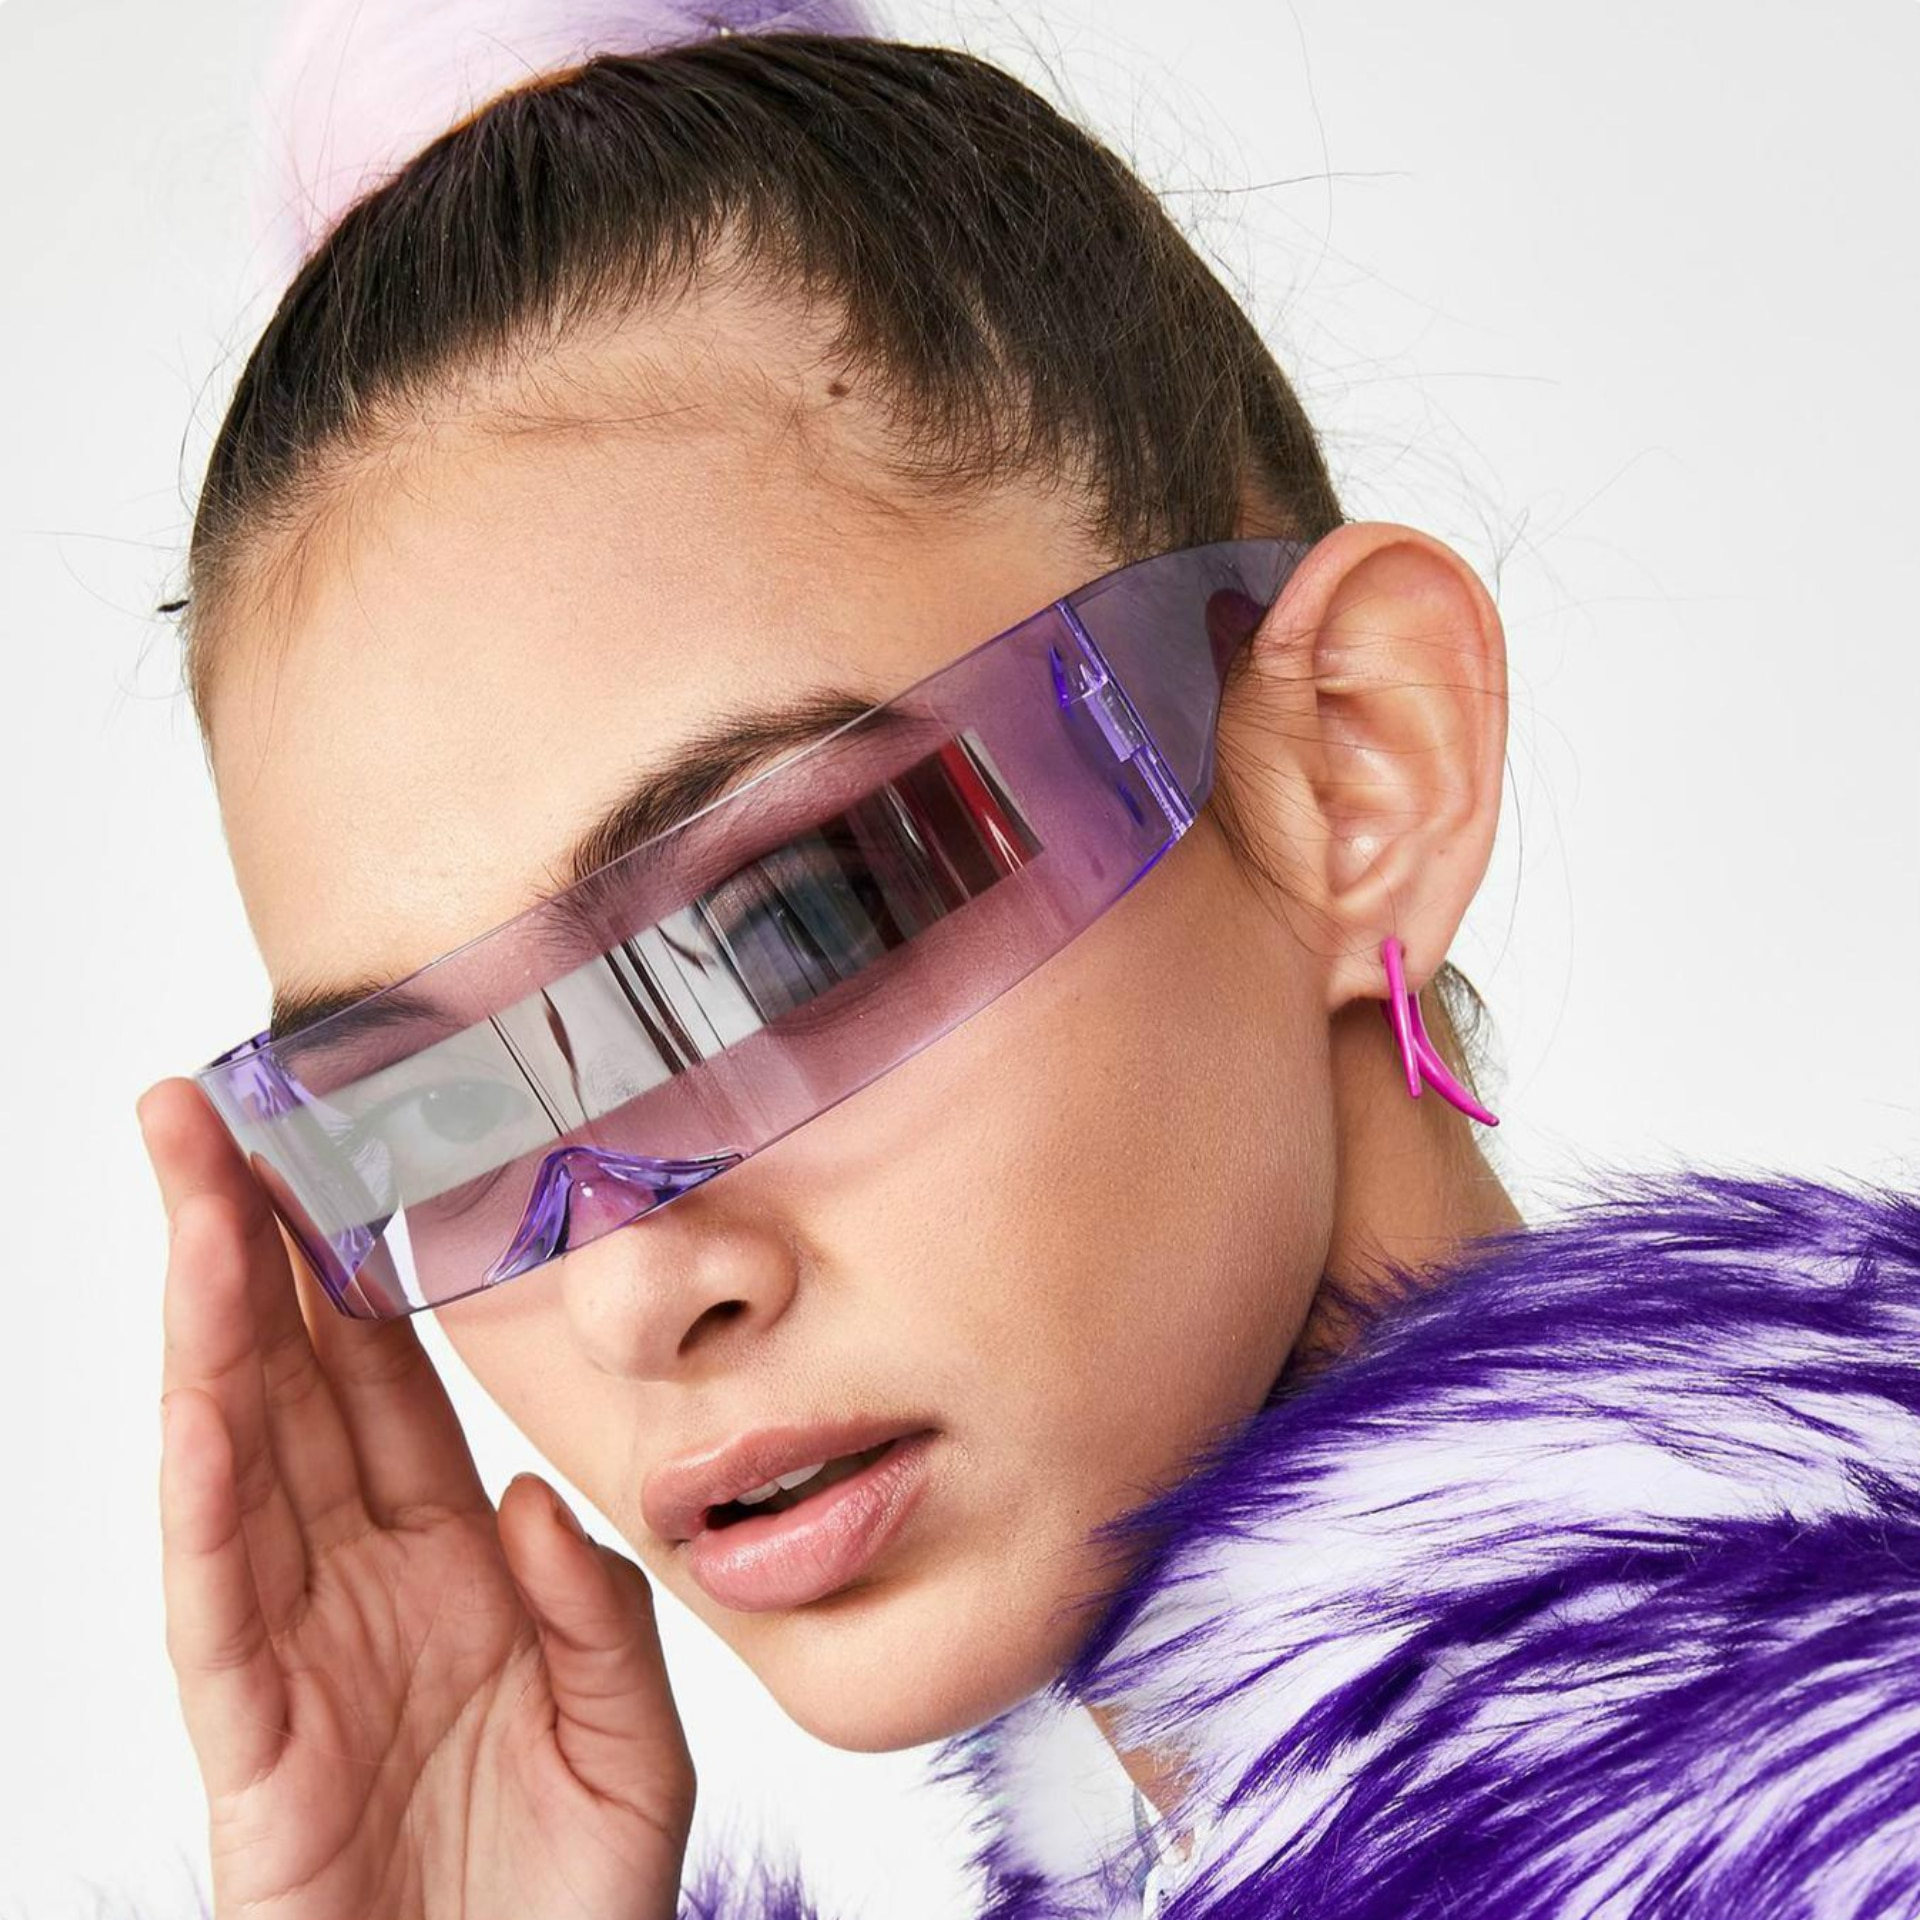 Luxry Glasses For Women Visor Wrap Shield Large Mirror Sunglasses Riding Windproof Glasses Fashion R